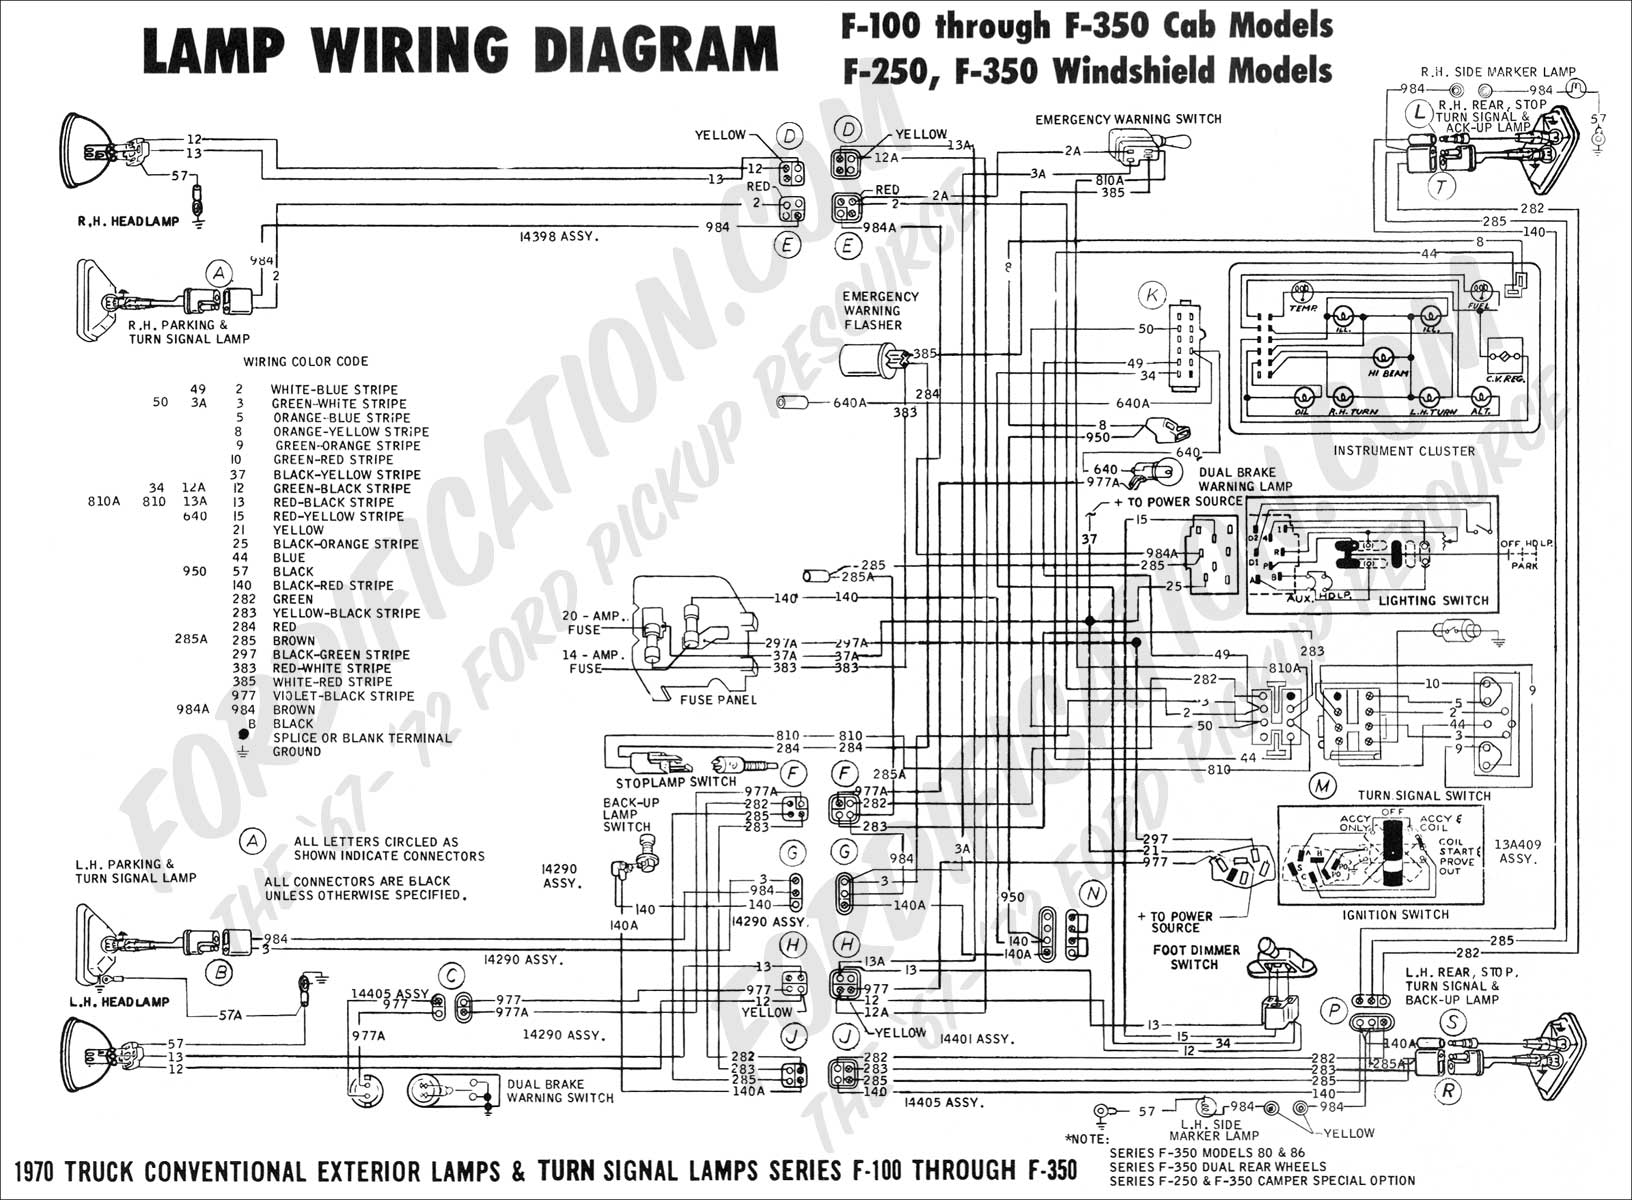 wiring diagram_70ext lights01 ford truck technical drawings and schematics section h wiring 2005 ford f250 wiring diagram at edmiracle.co